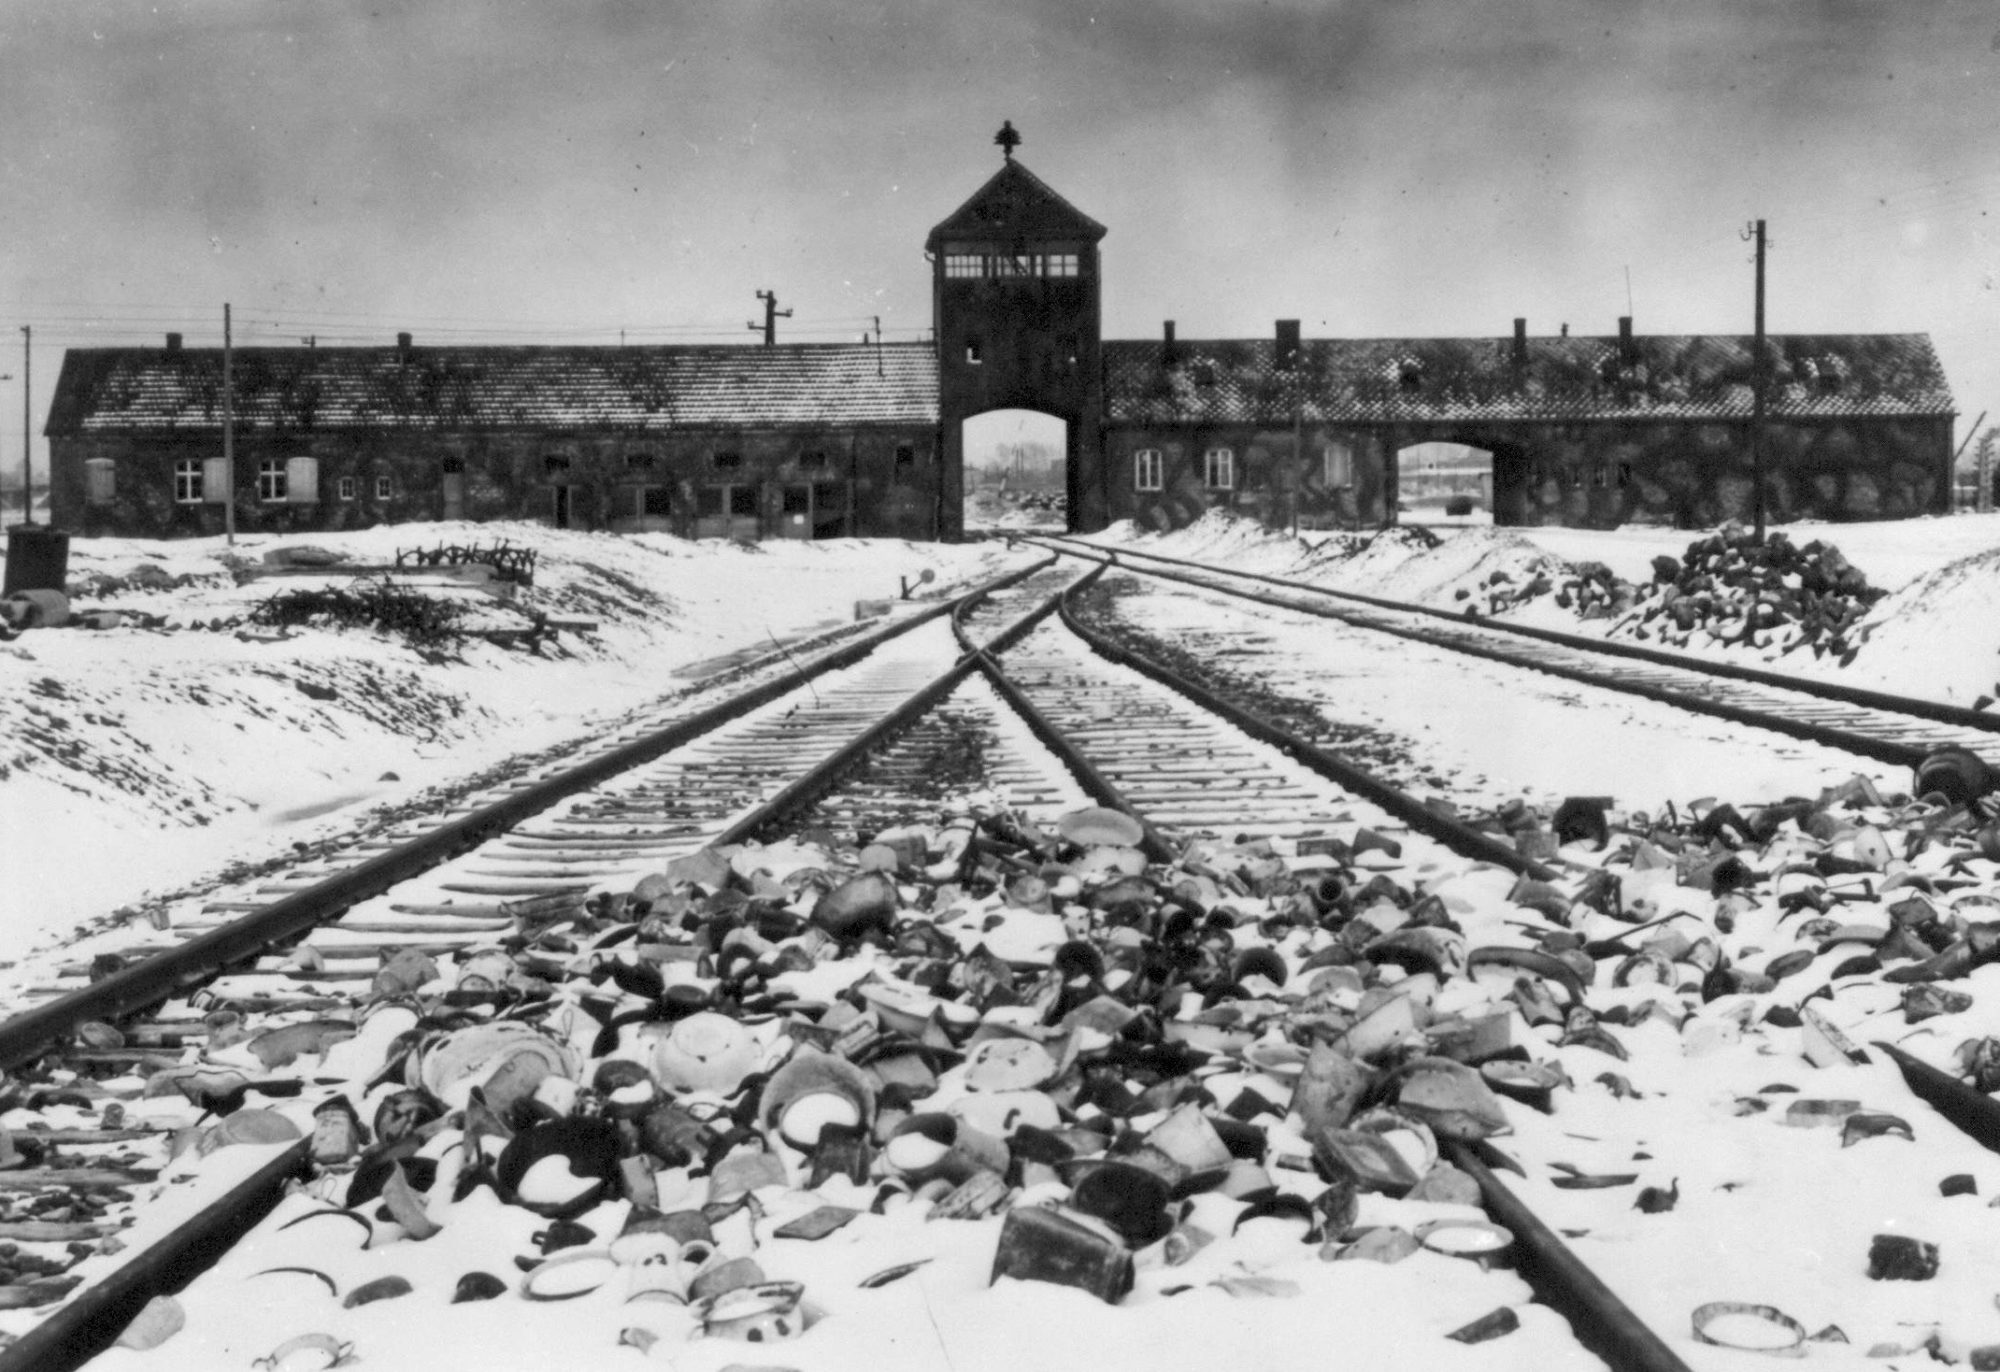 Still fighting over Auschwitz, 70 years on